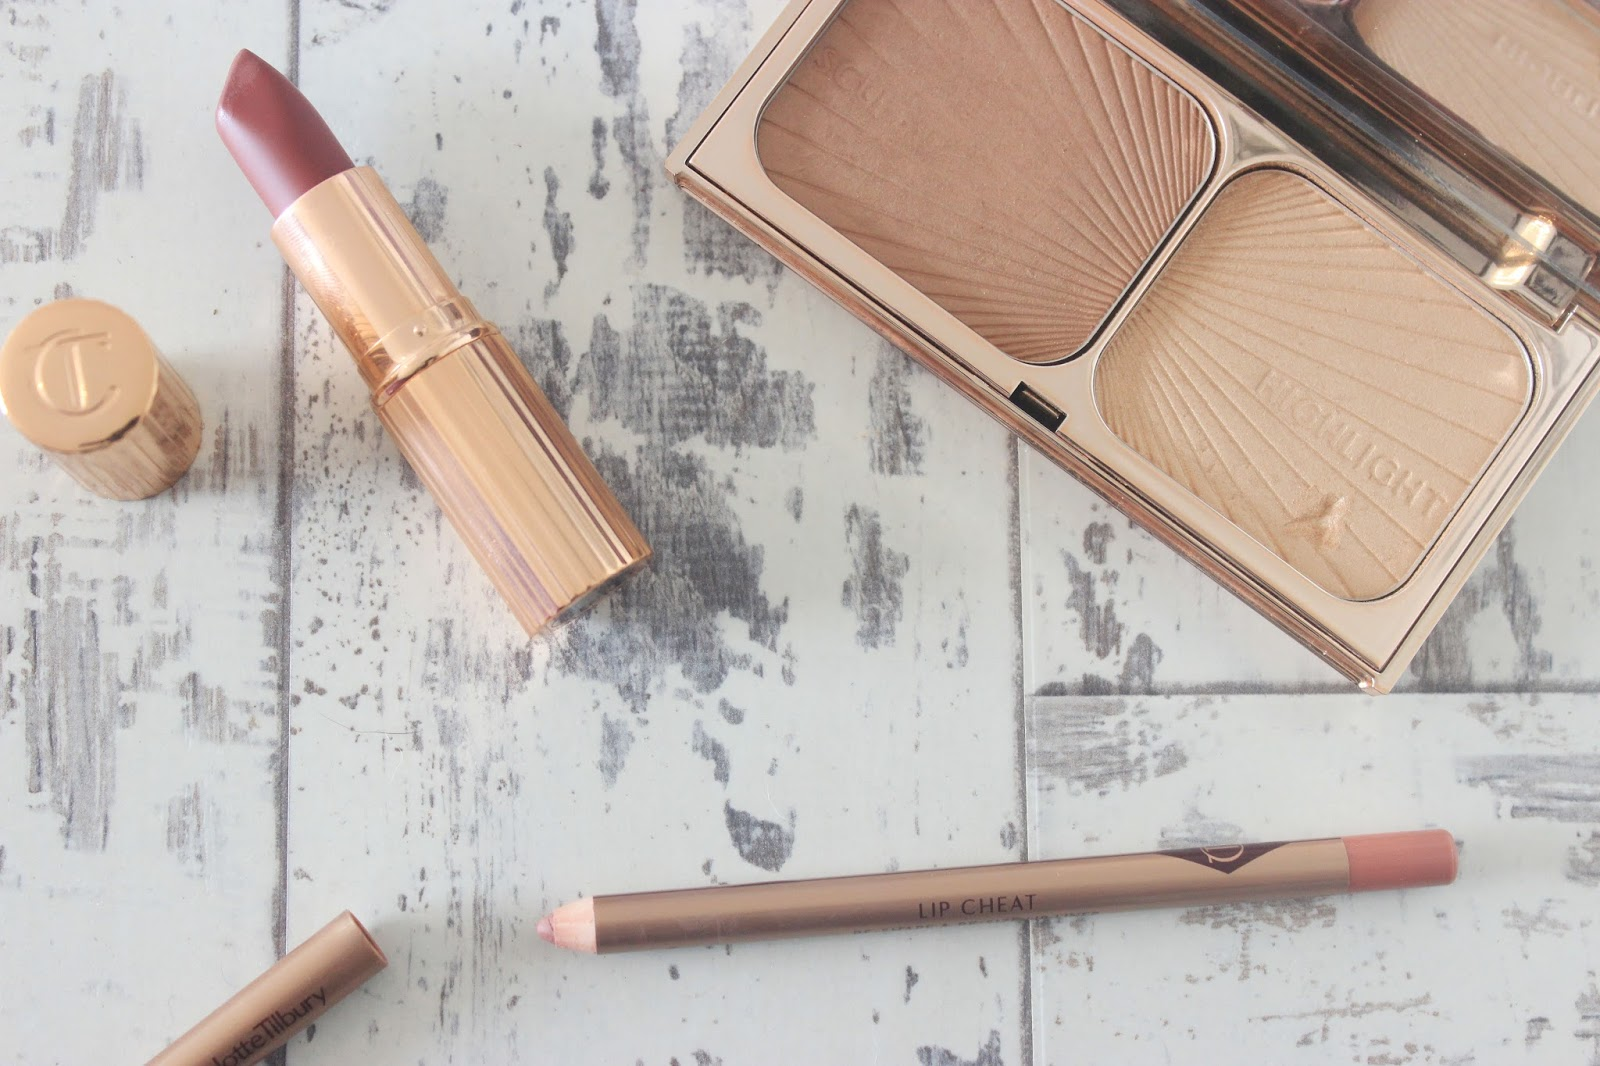 Charlotte Tilbury, Pillow Talk, Bronze and Glow, Bond Girl